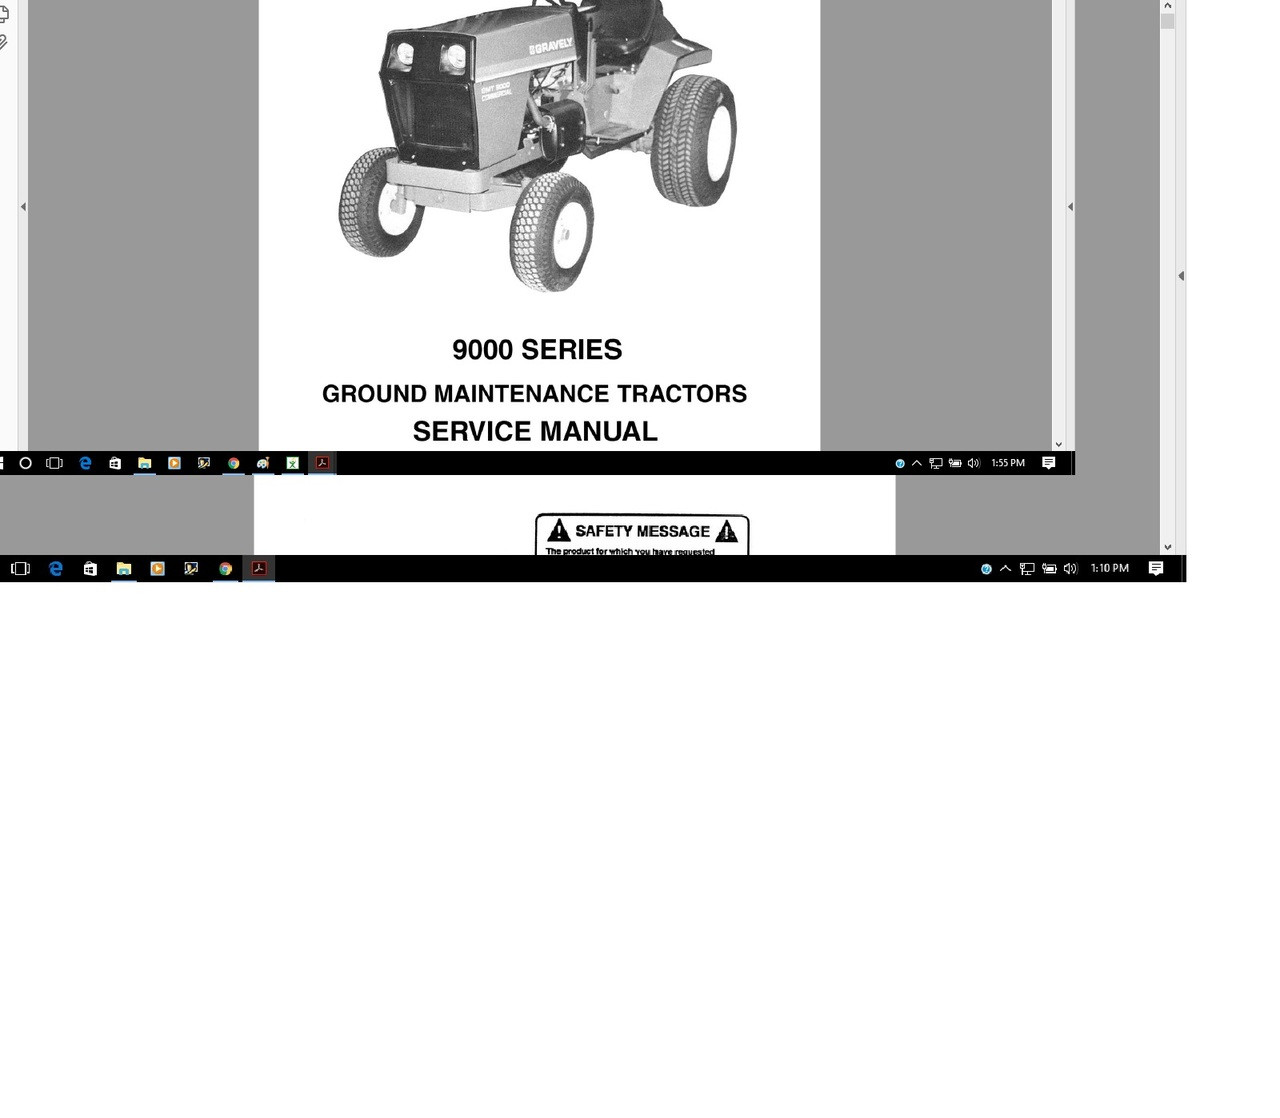 Gravely GMT 9000 continental R 800 R 836 engine manuals service parts  operations